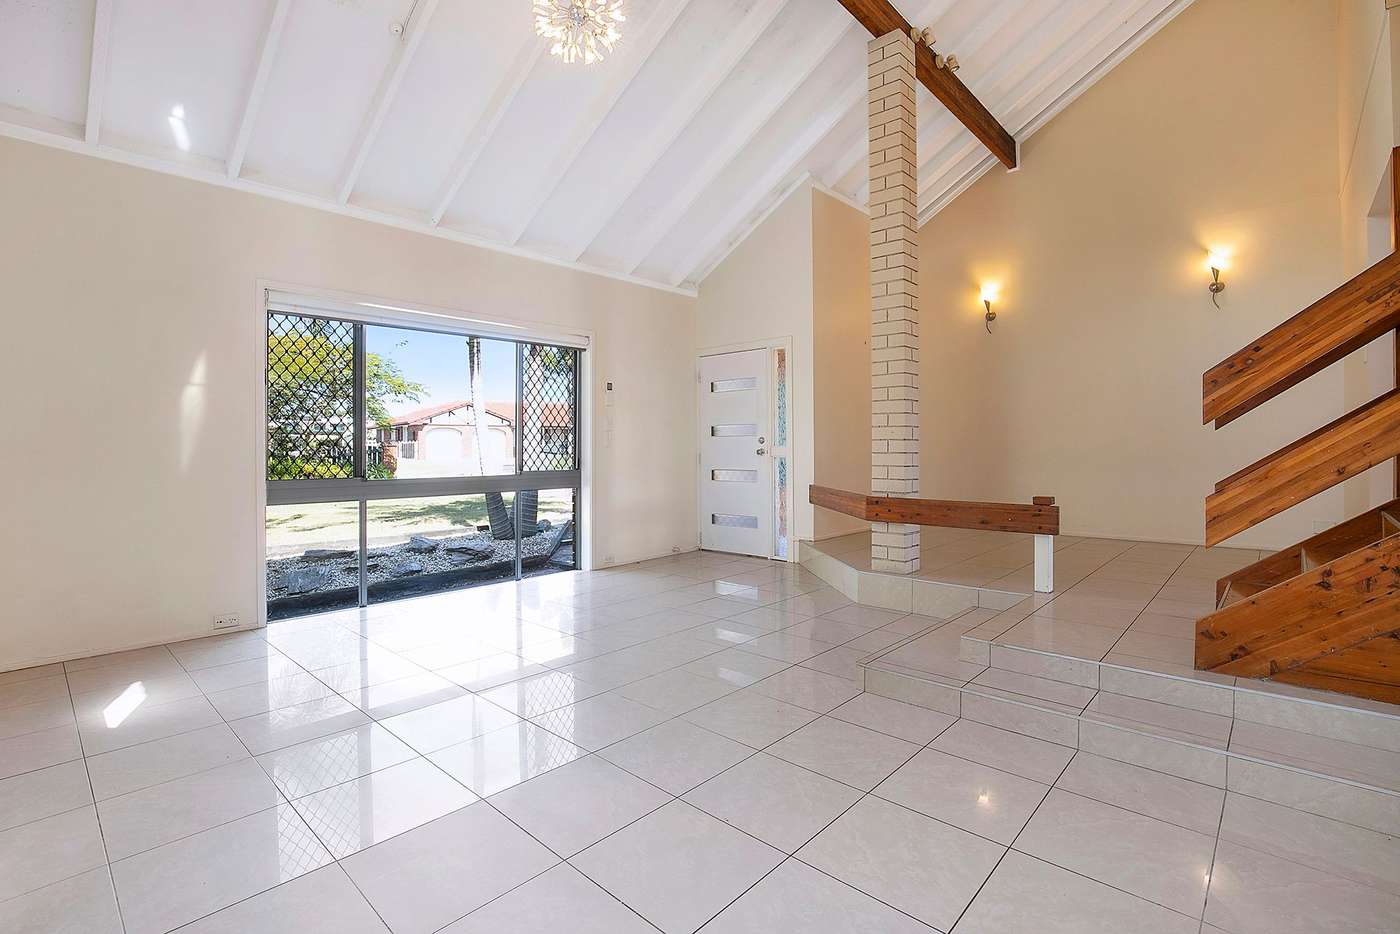 Fifth view of Homely house listing, 1 Courageous Court, Newport QLD 4020